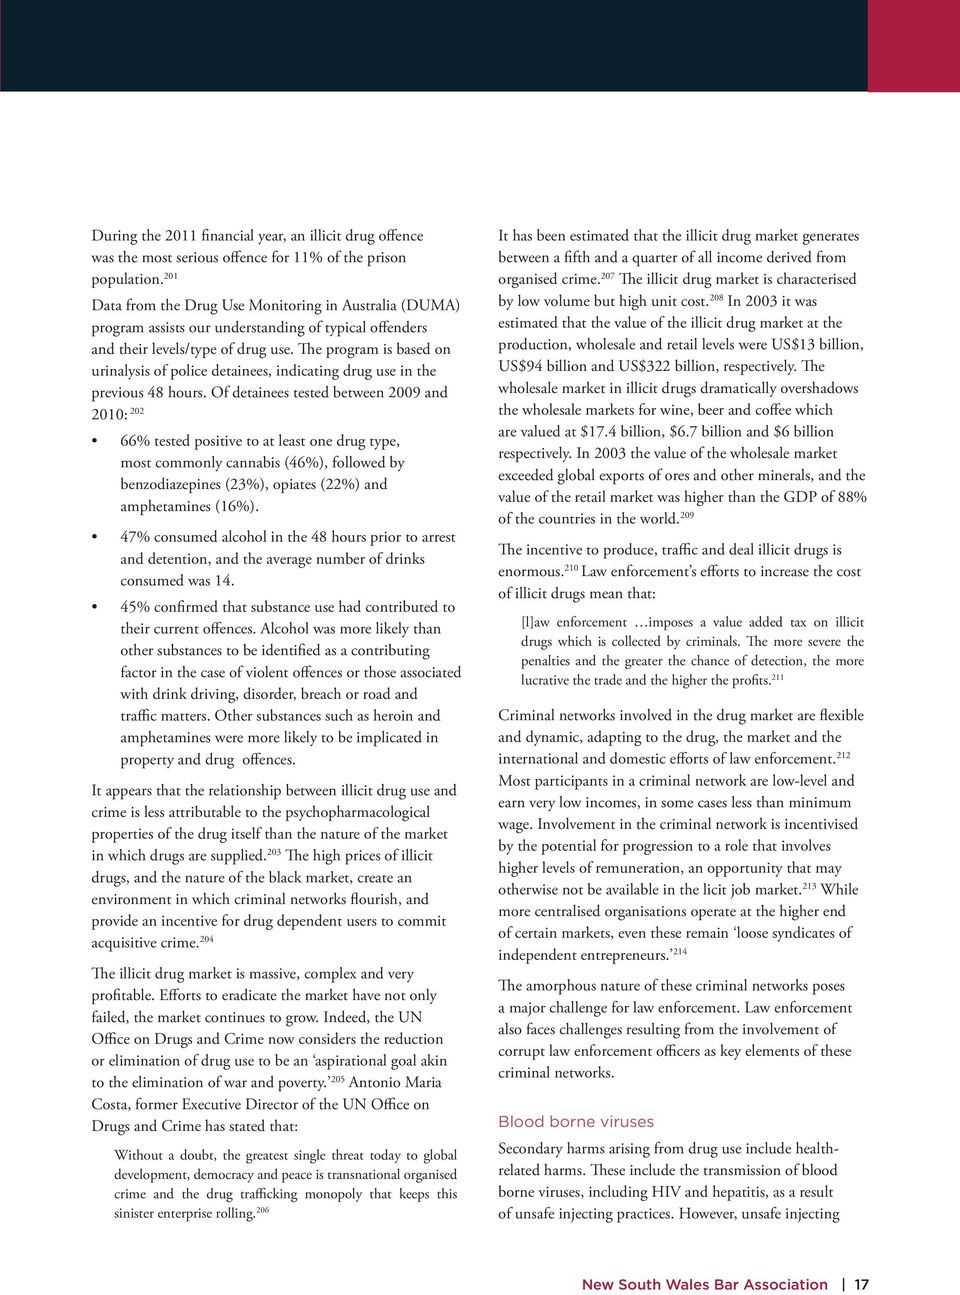 criminalization of knowlingly transmitting aids essay It is a trend that has alarmed some aids activists who fear that the scope of the 19 thoughts on  the criminalization of hiv transmission when there needs to be laws to stop those people from going out an knowingly passing it around an for me i was lied to an that led.